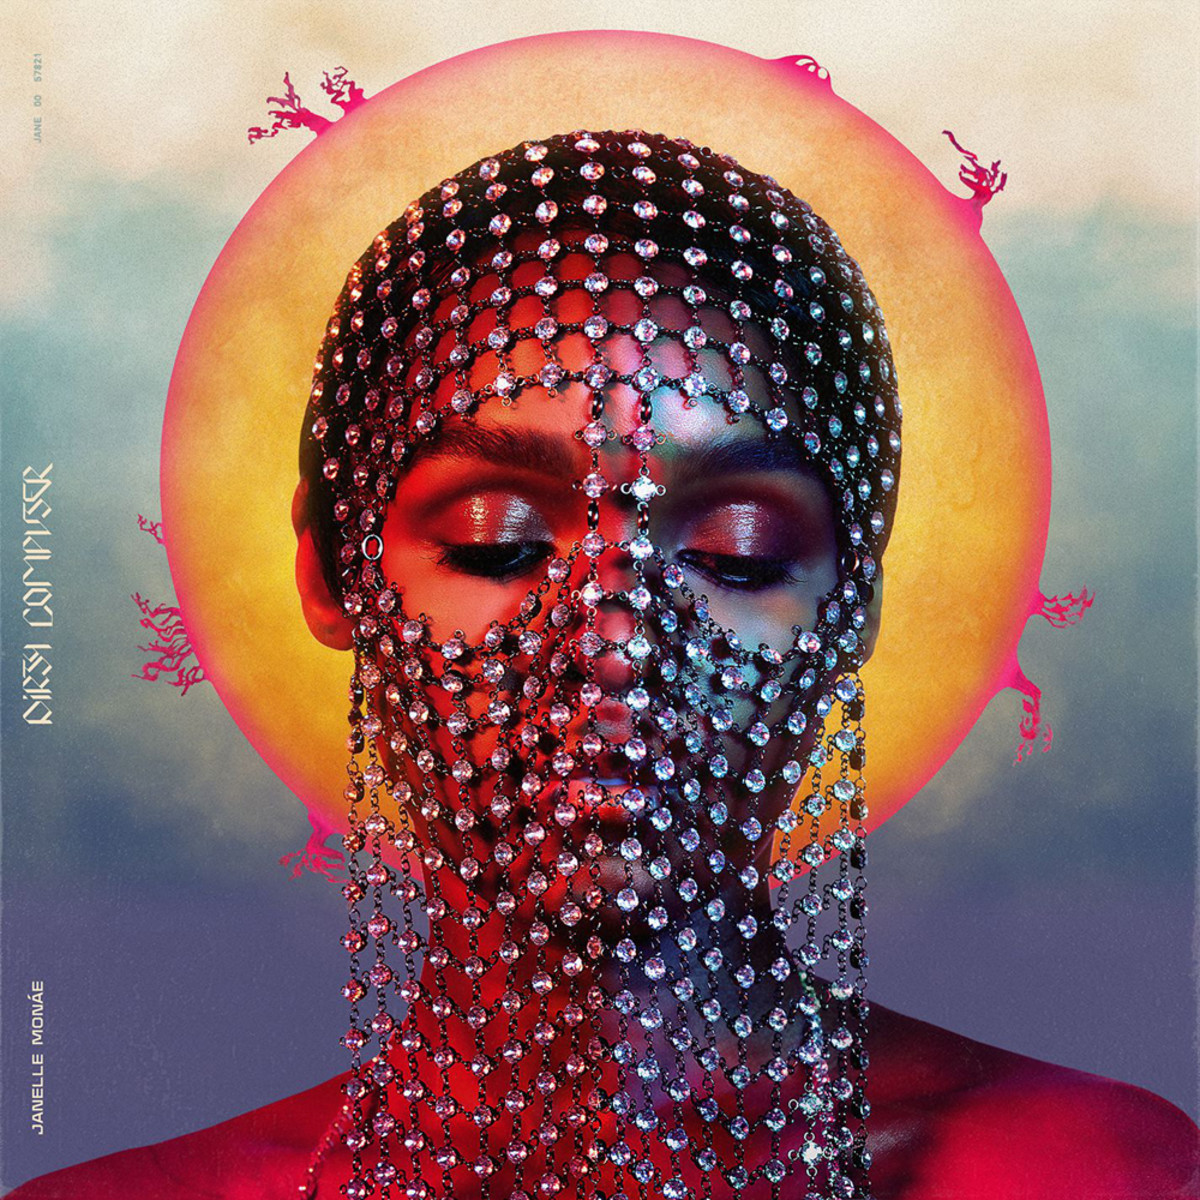 janelle-monae-dirty-computer-album-art